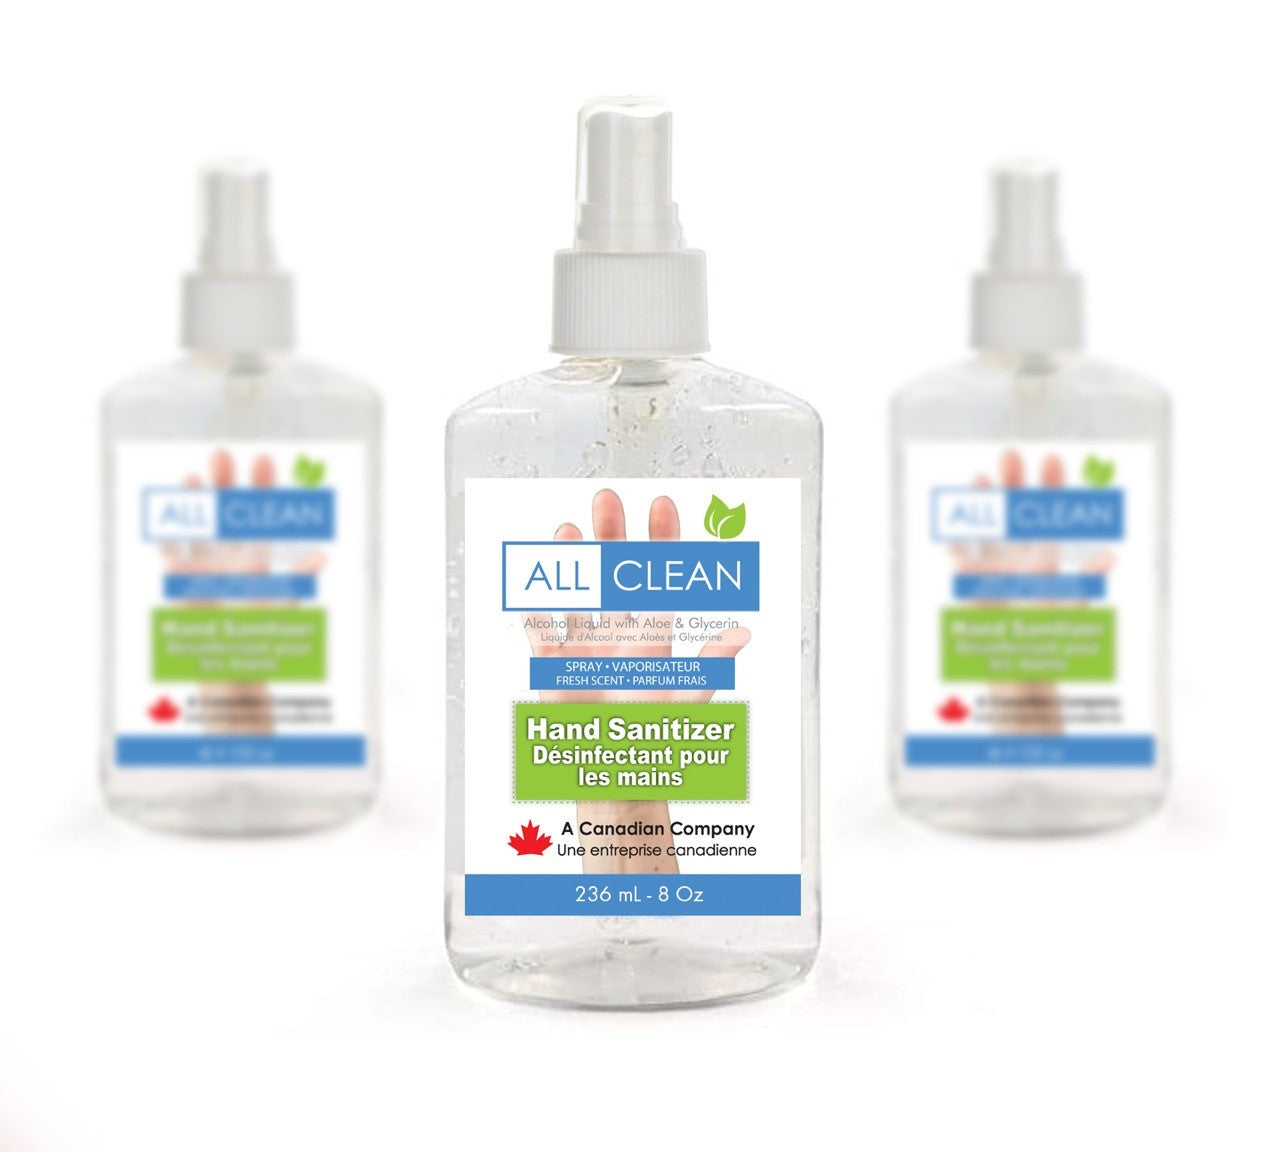 Hand Sanitizer 8oz/236mL Bottles (24 units/case)